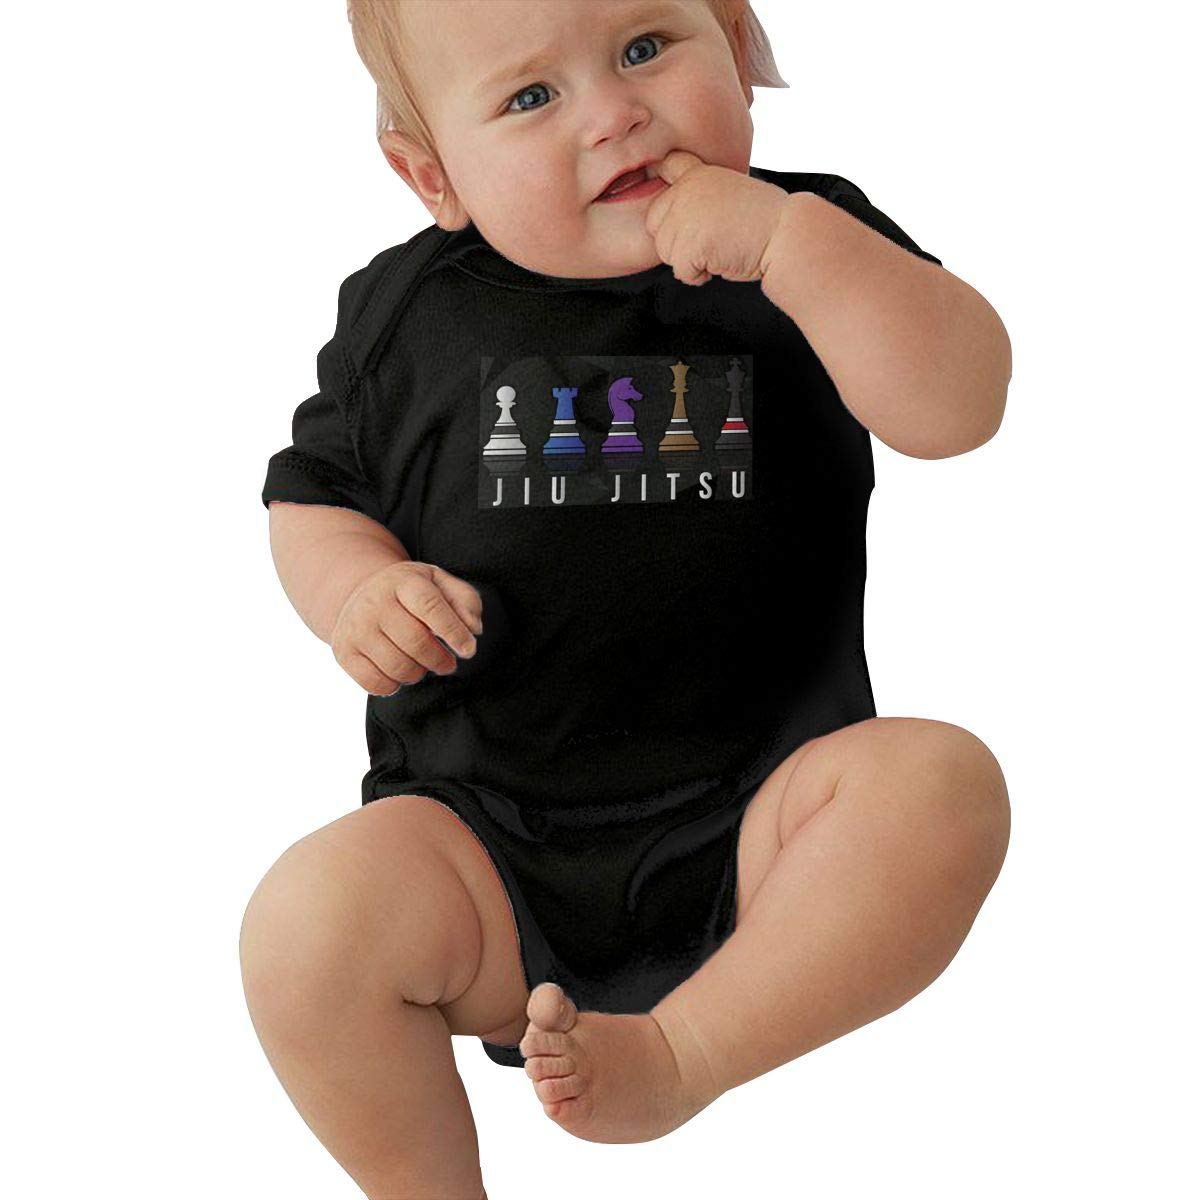 Jiu-Jitsu Chess Infant Baby Jumpsuit Snap Closure Onesies Funny Tops for 0-24 Months Baby